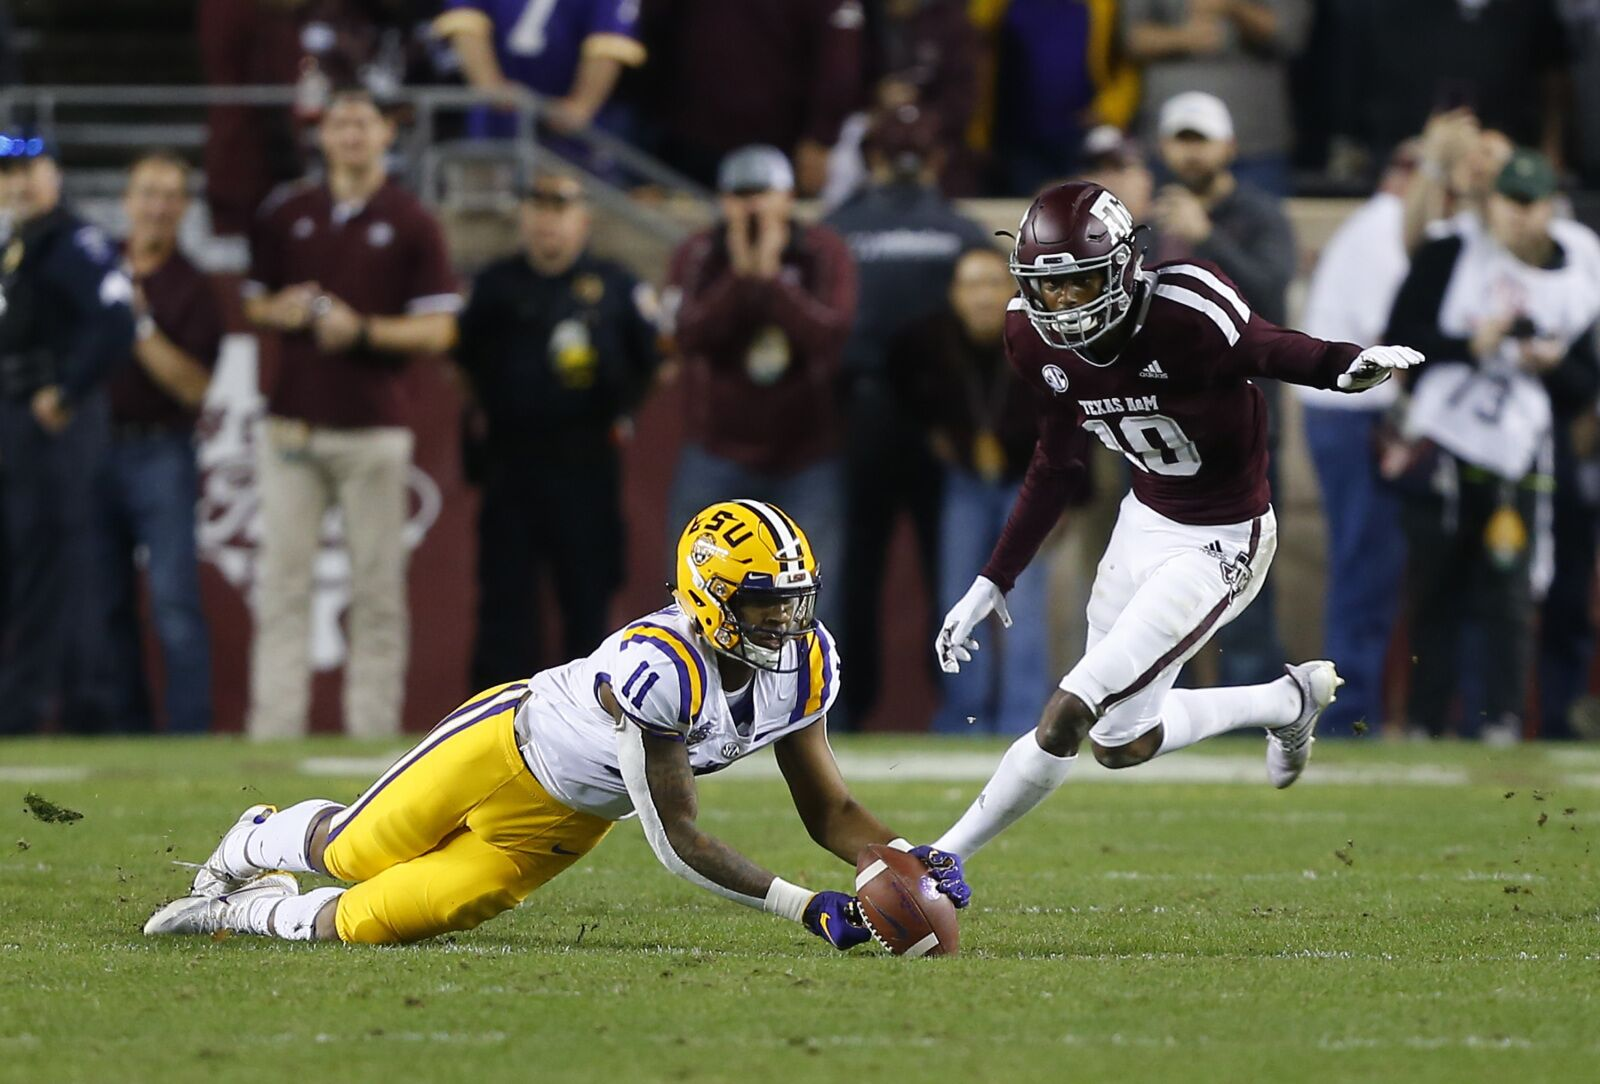 Texas Football: What can be learned from Texas A&M's win over LSU